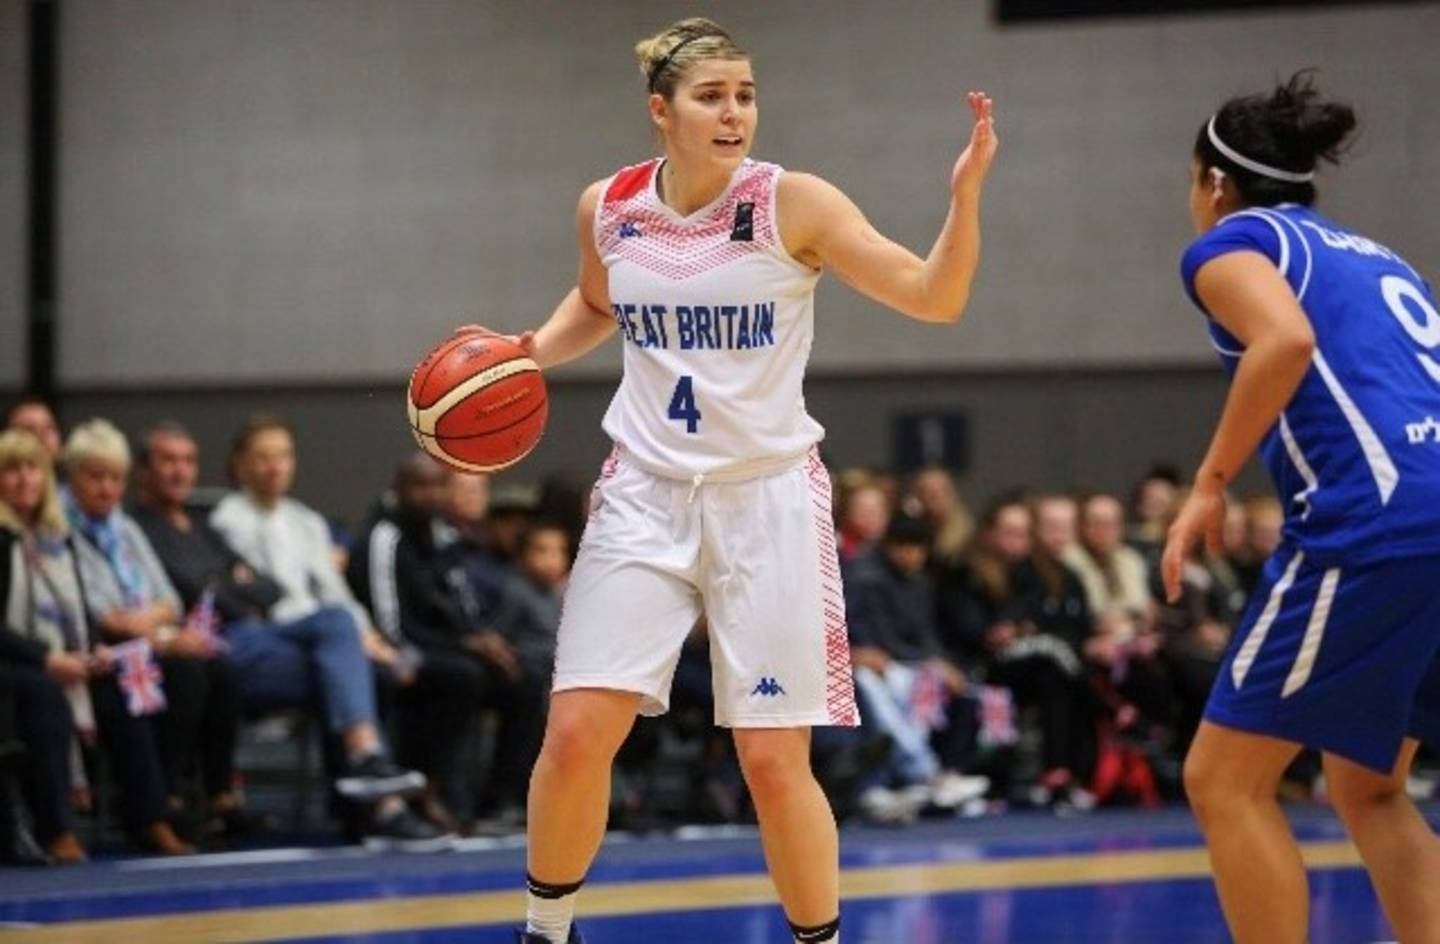 Georgia Jones playing basketball for Great Britain